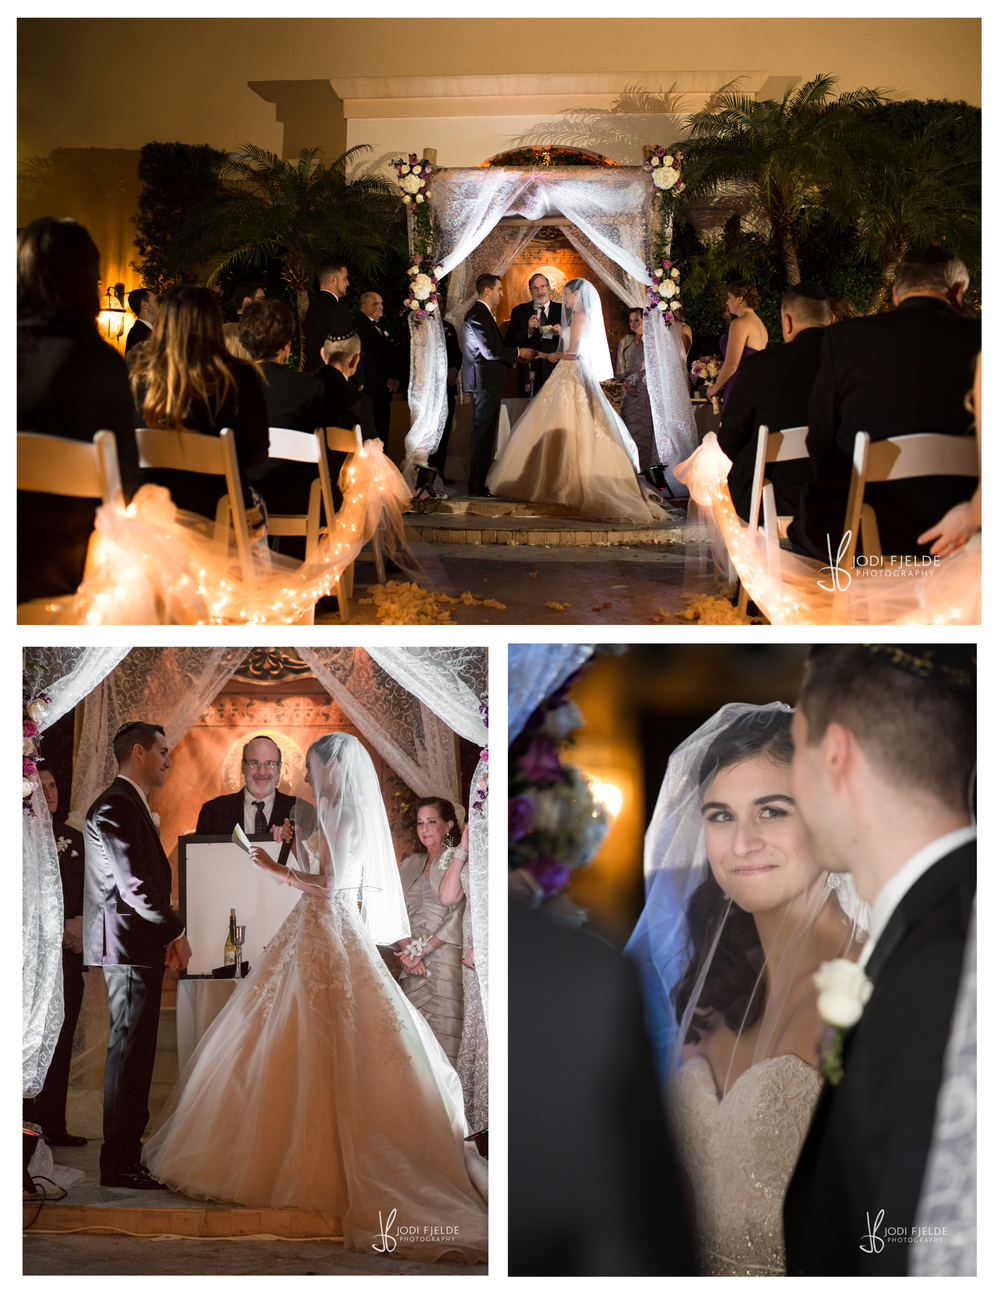 Benvenuto_Palm_Beach_Wedding_Jewish_Michelle & Jason_Jodi_Fjedle_Photography 38.jpg